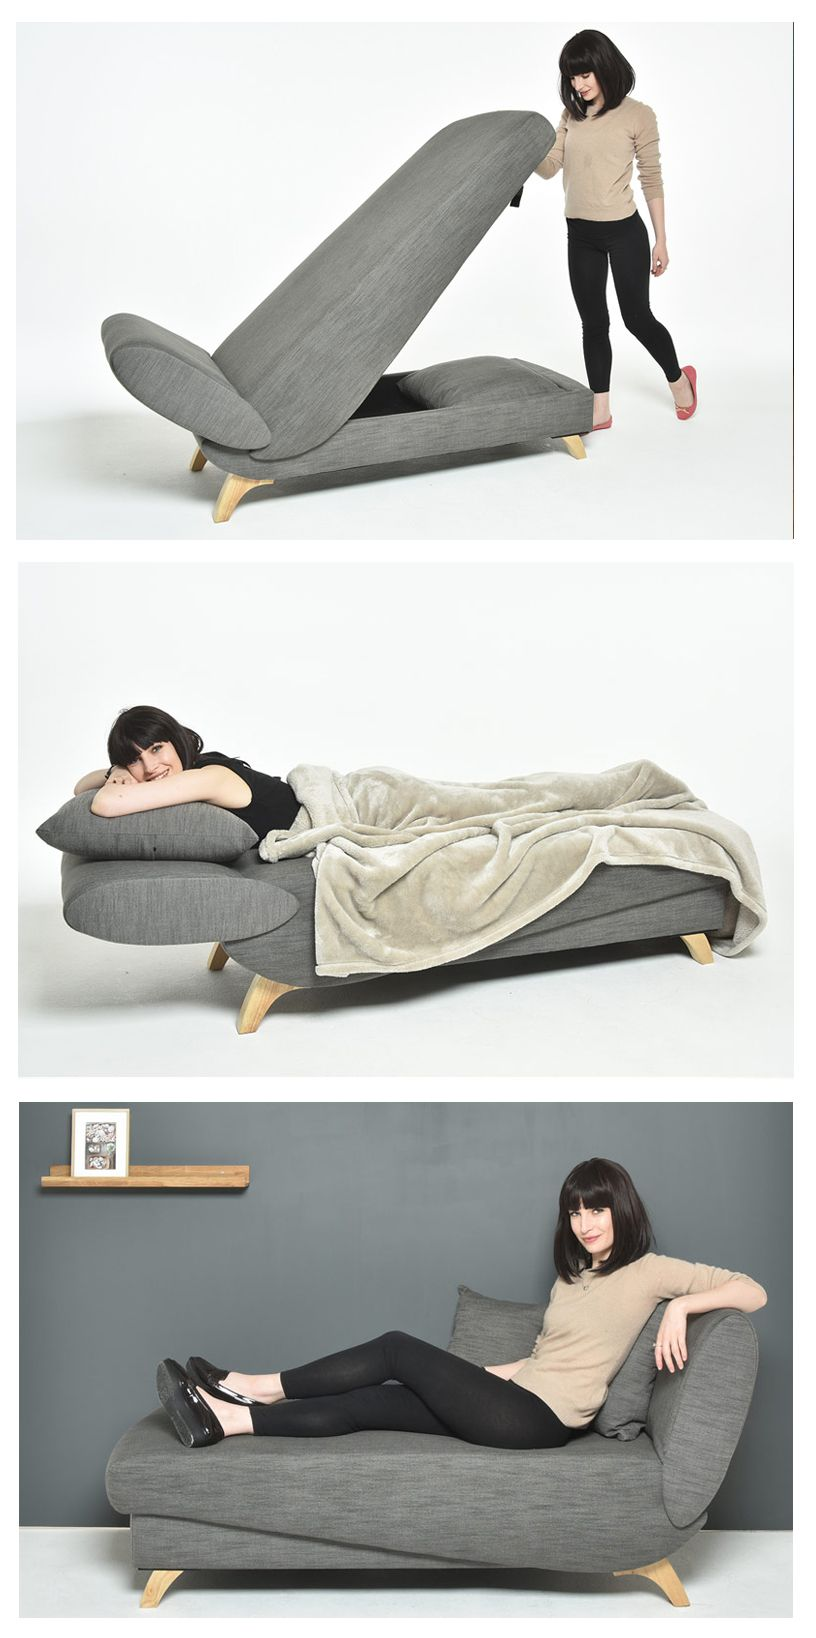 Milly Sofa Bed With Images Single Sofa Bed Sofa Bed Sofa